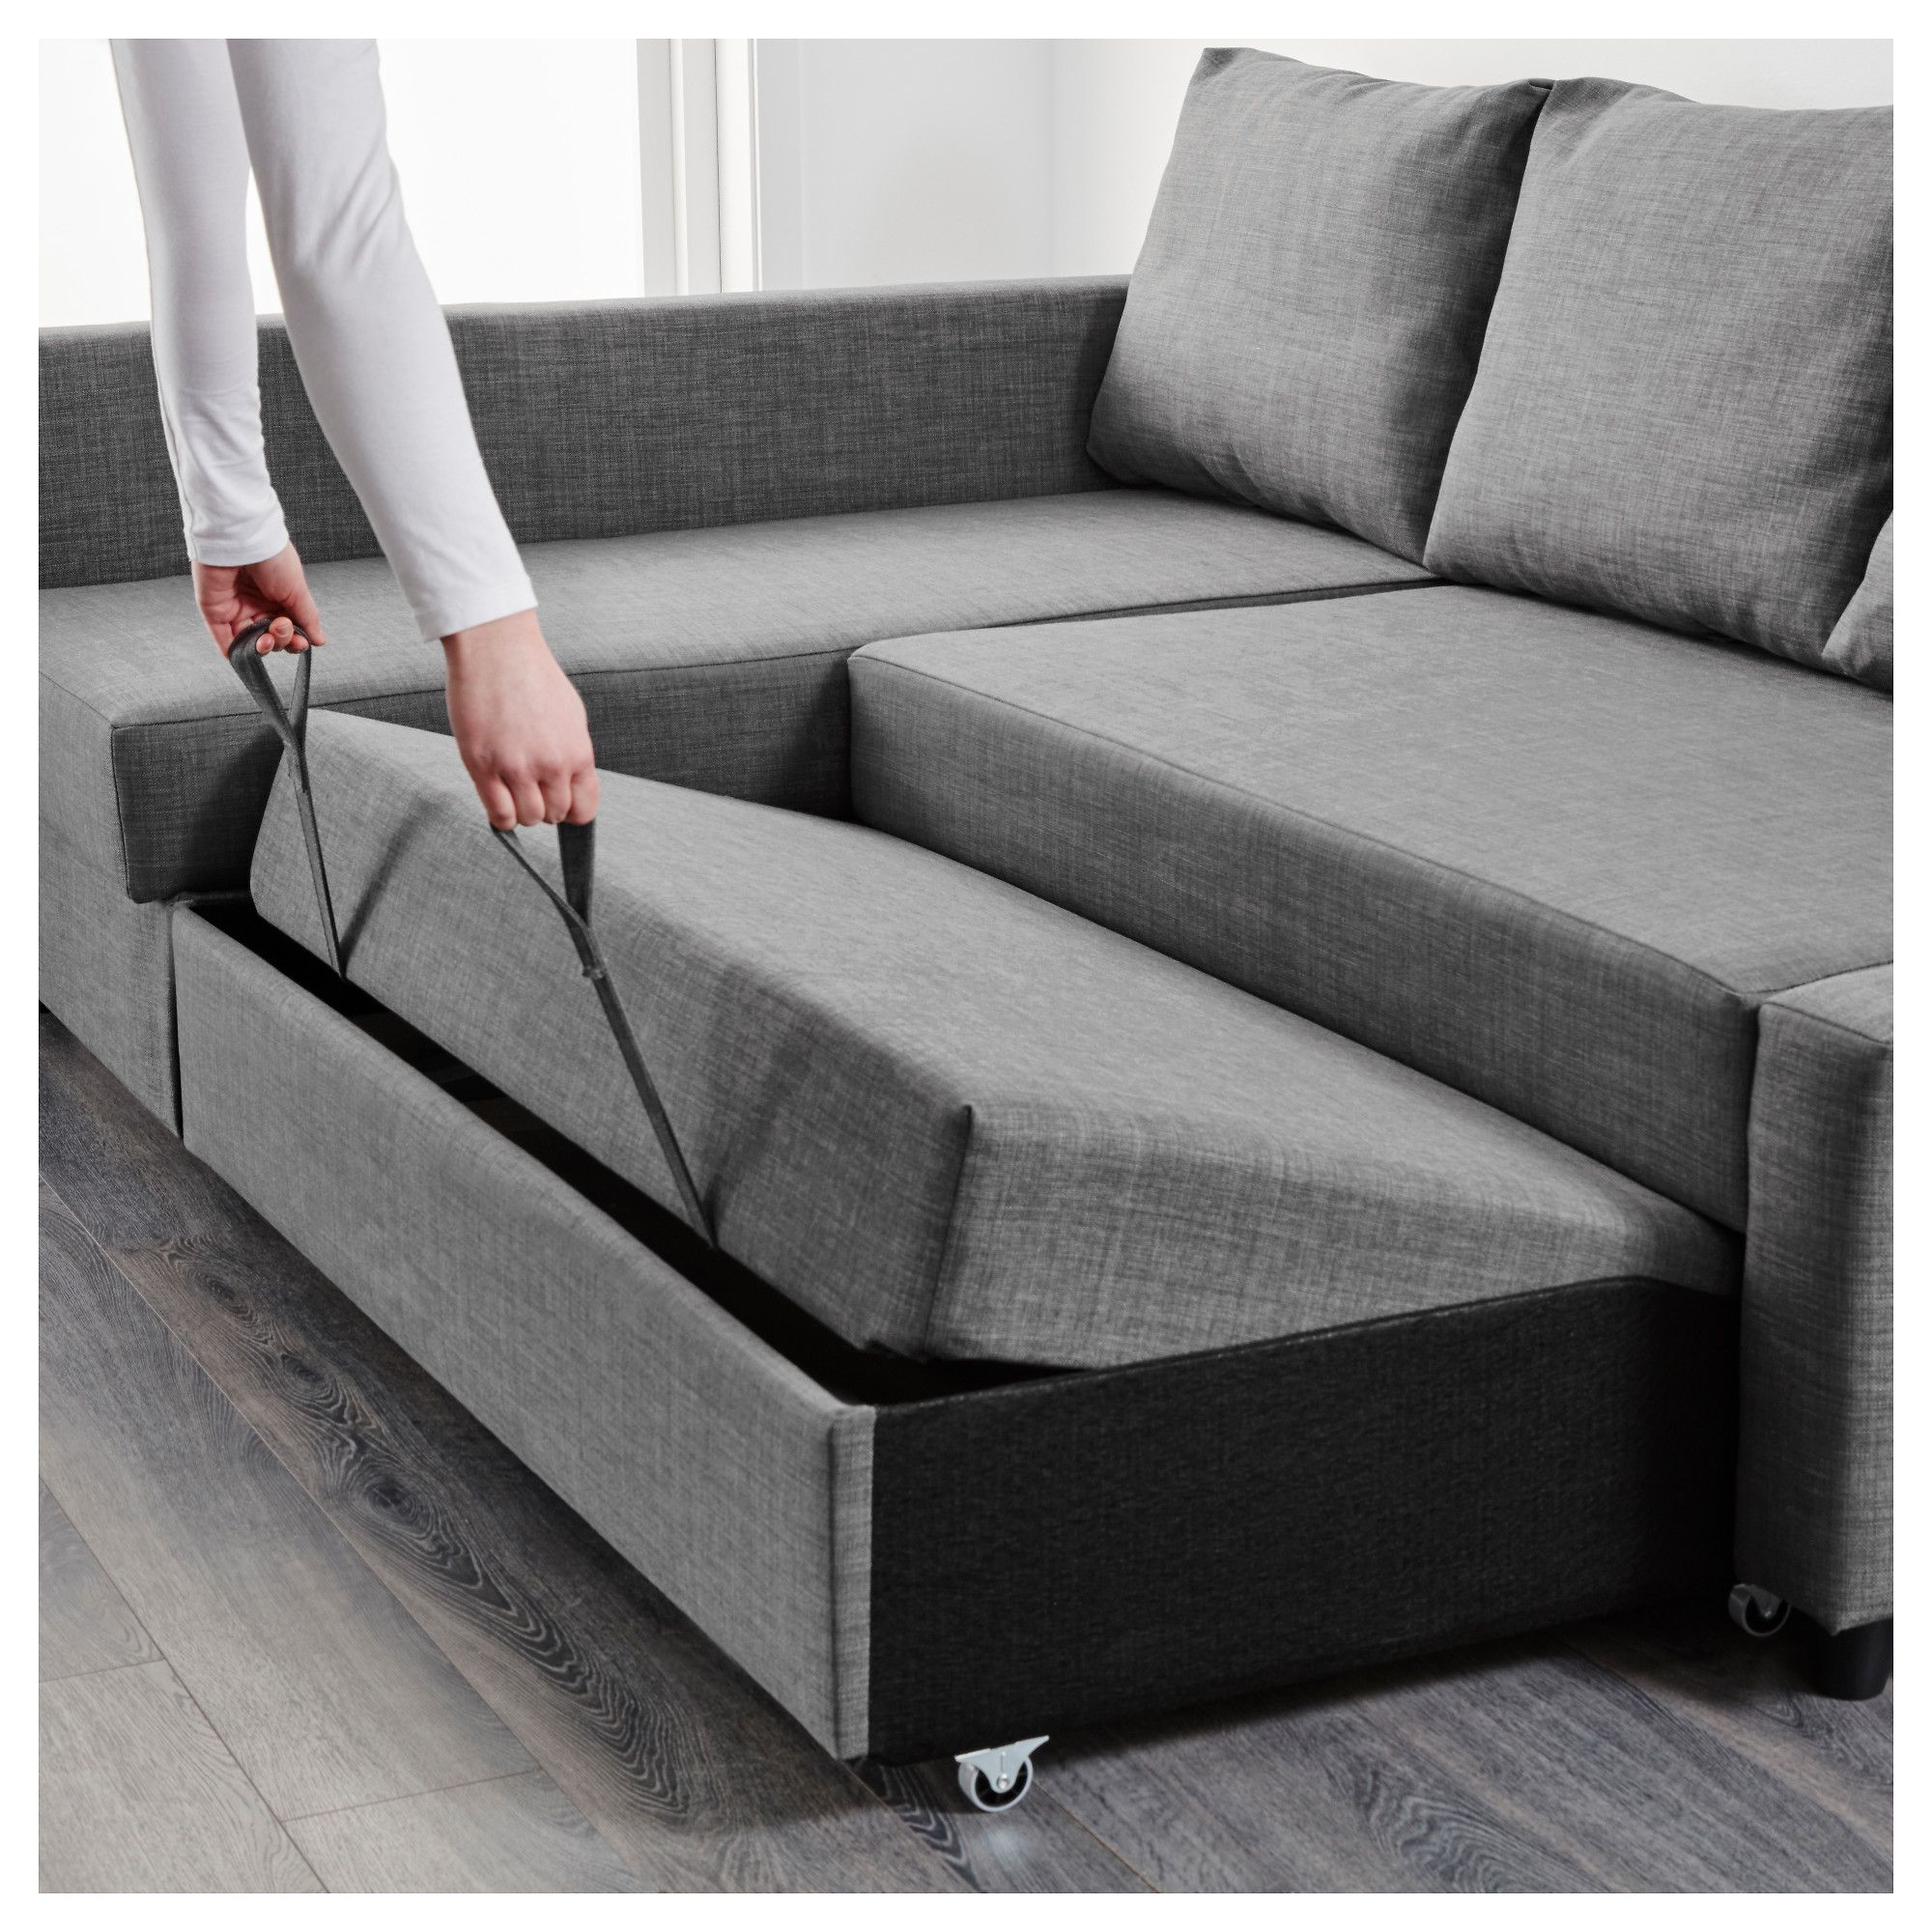 Couch Ikea Friheten Corner Sofa Bed With Storage Skiftebo Dark Grey Indoor